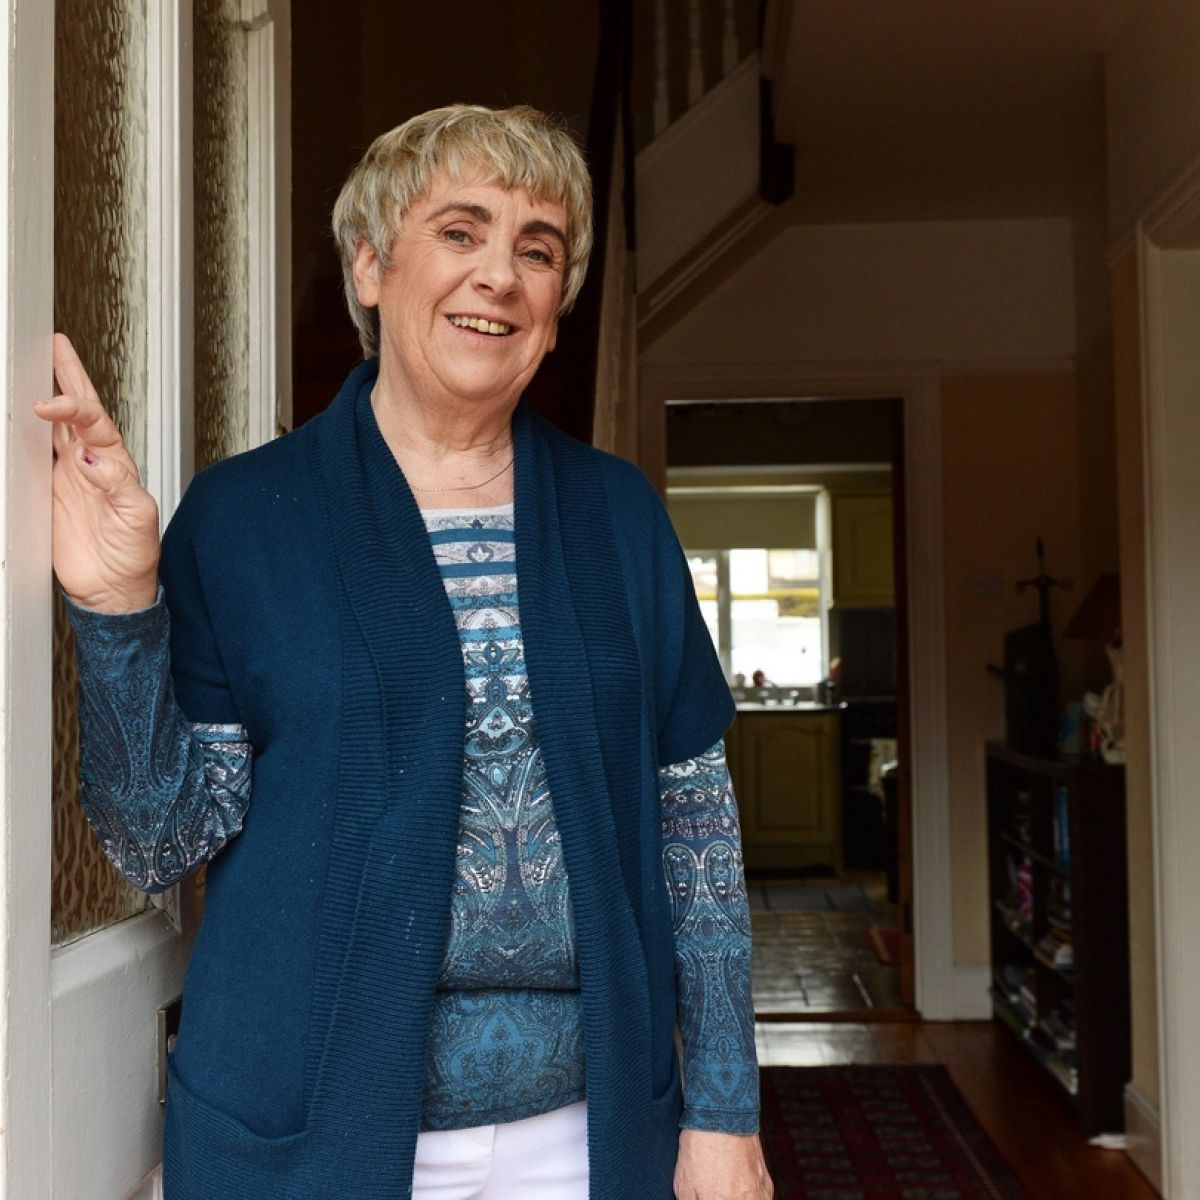 Meet the Airbnb hosts in their 60s